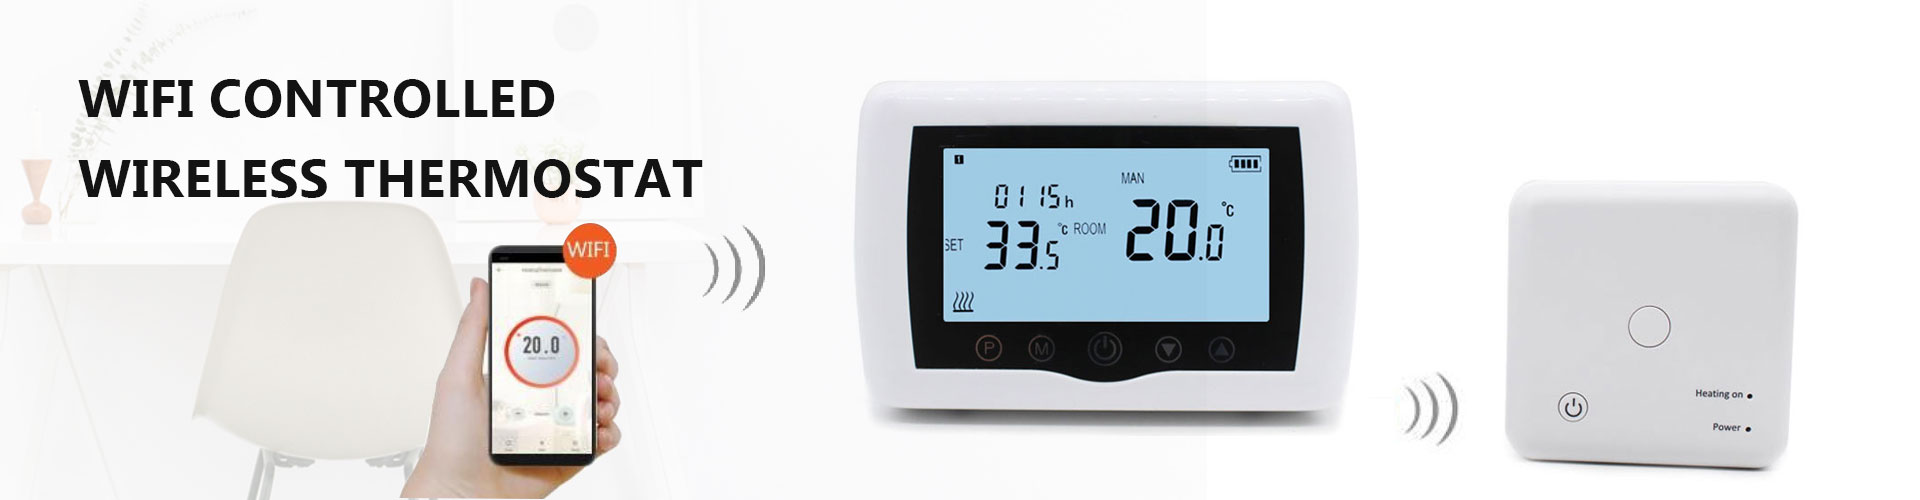 Hotowell wifi wireless boiler thermostat